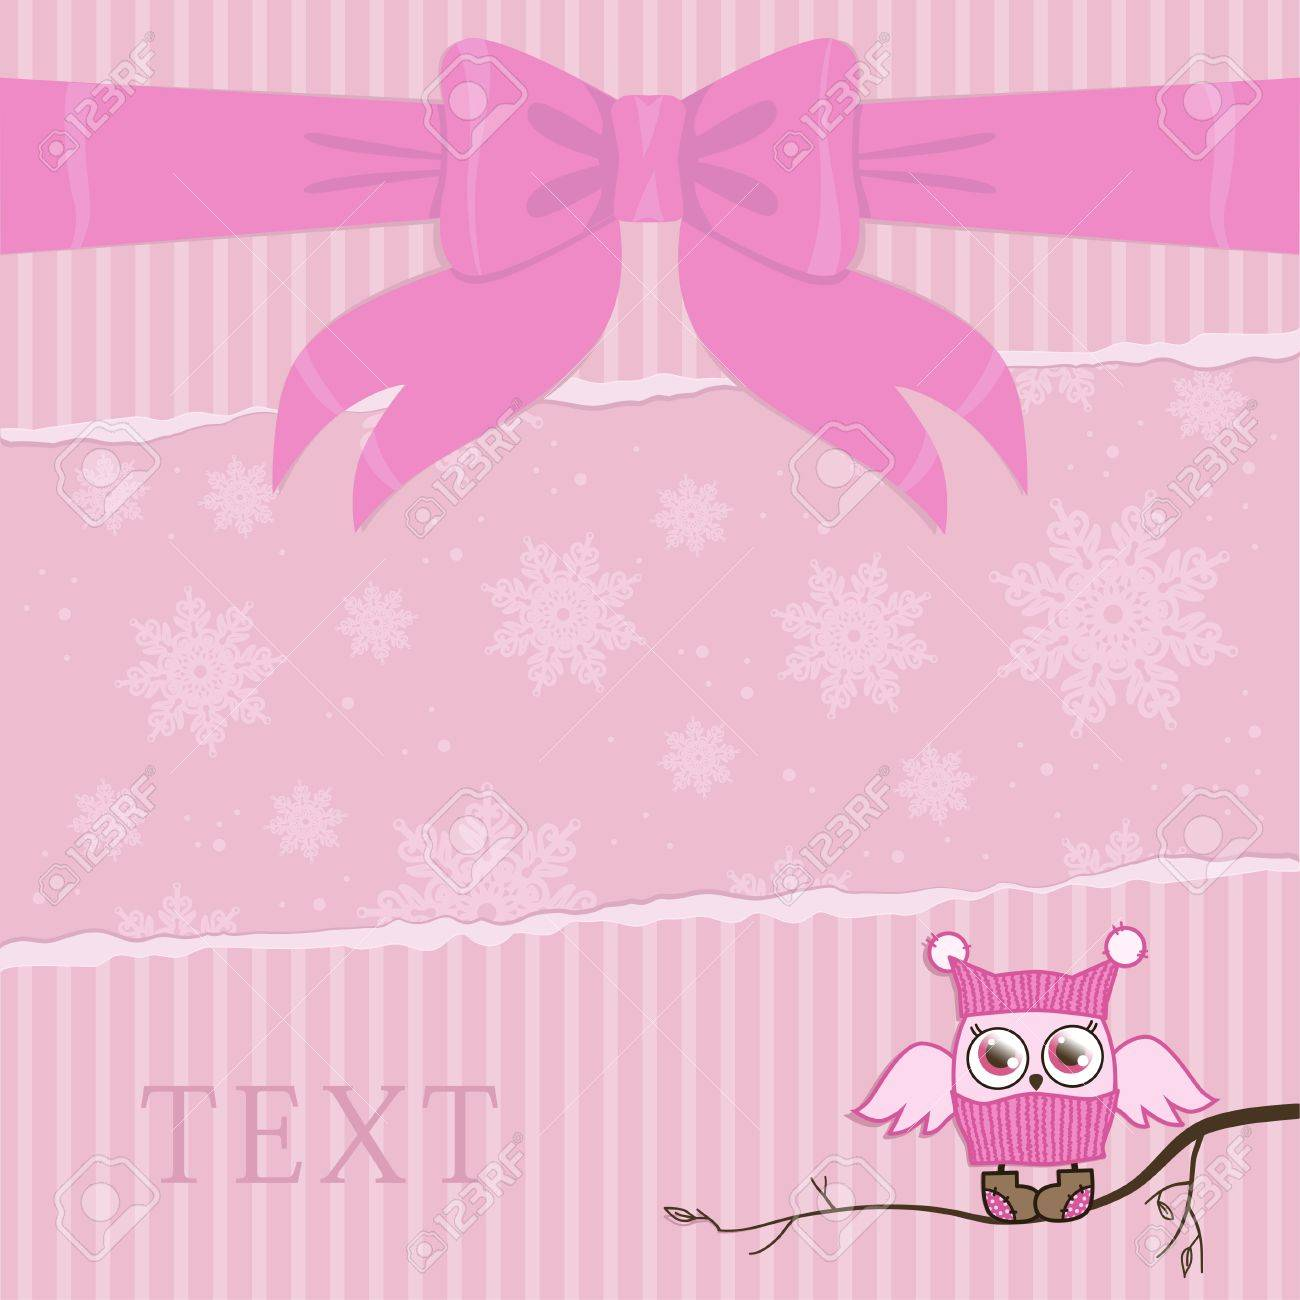 template illustration on a card with an owl in pink color Stock Vector - 16391501